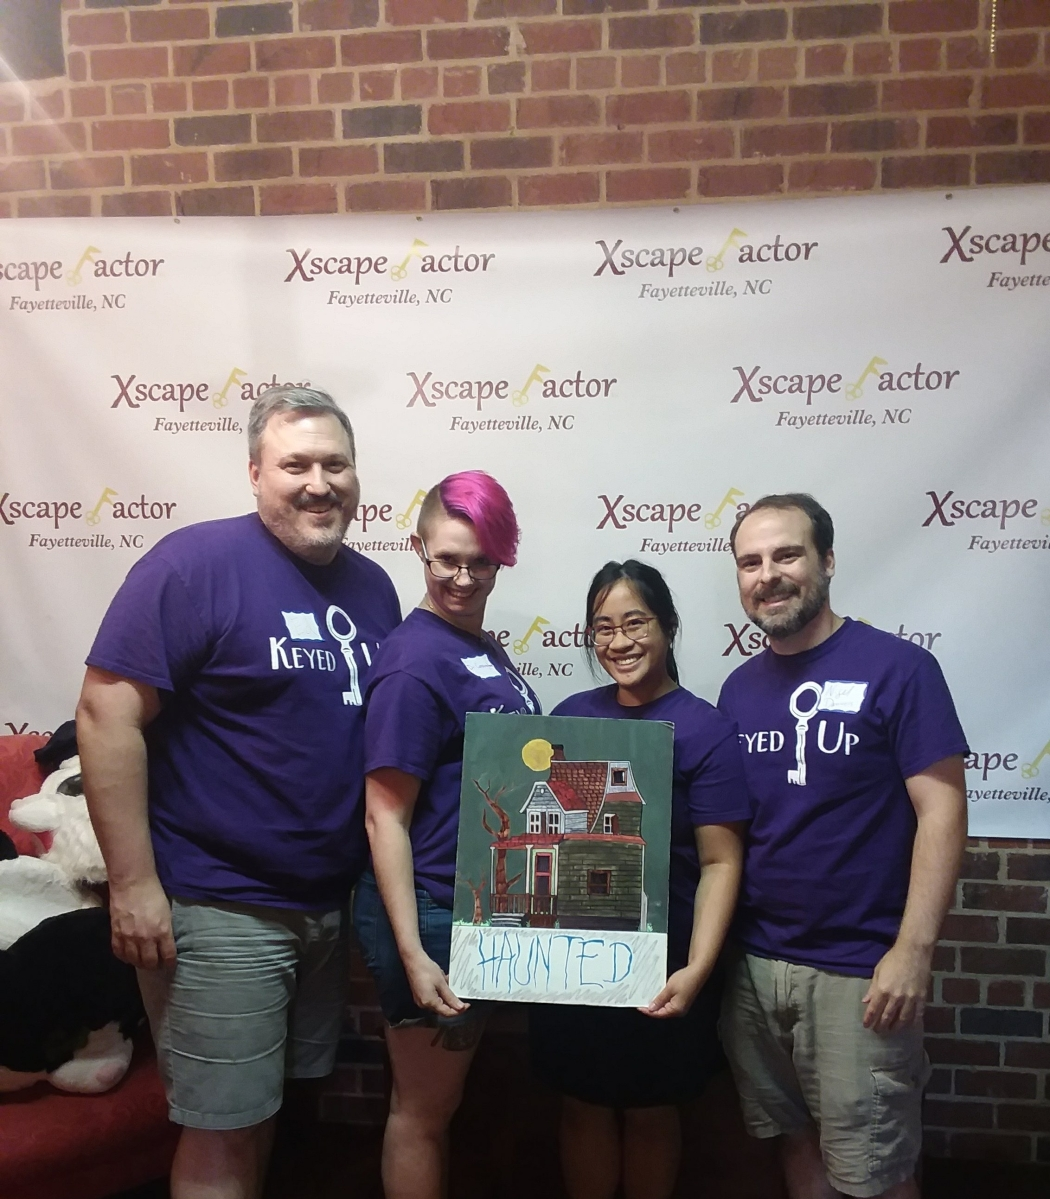 Xscape Factor Haunted Review Escape Room Adventurer